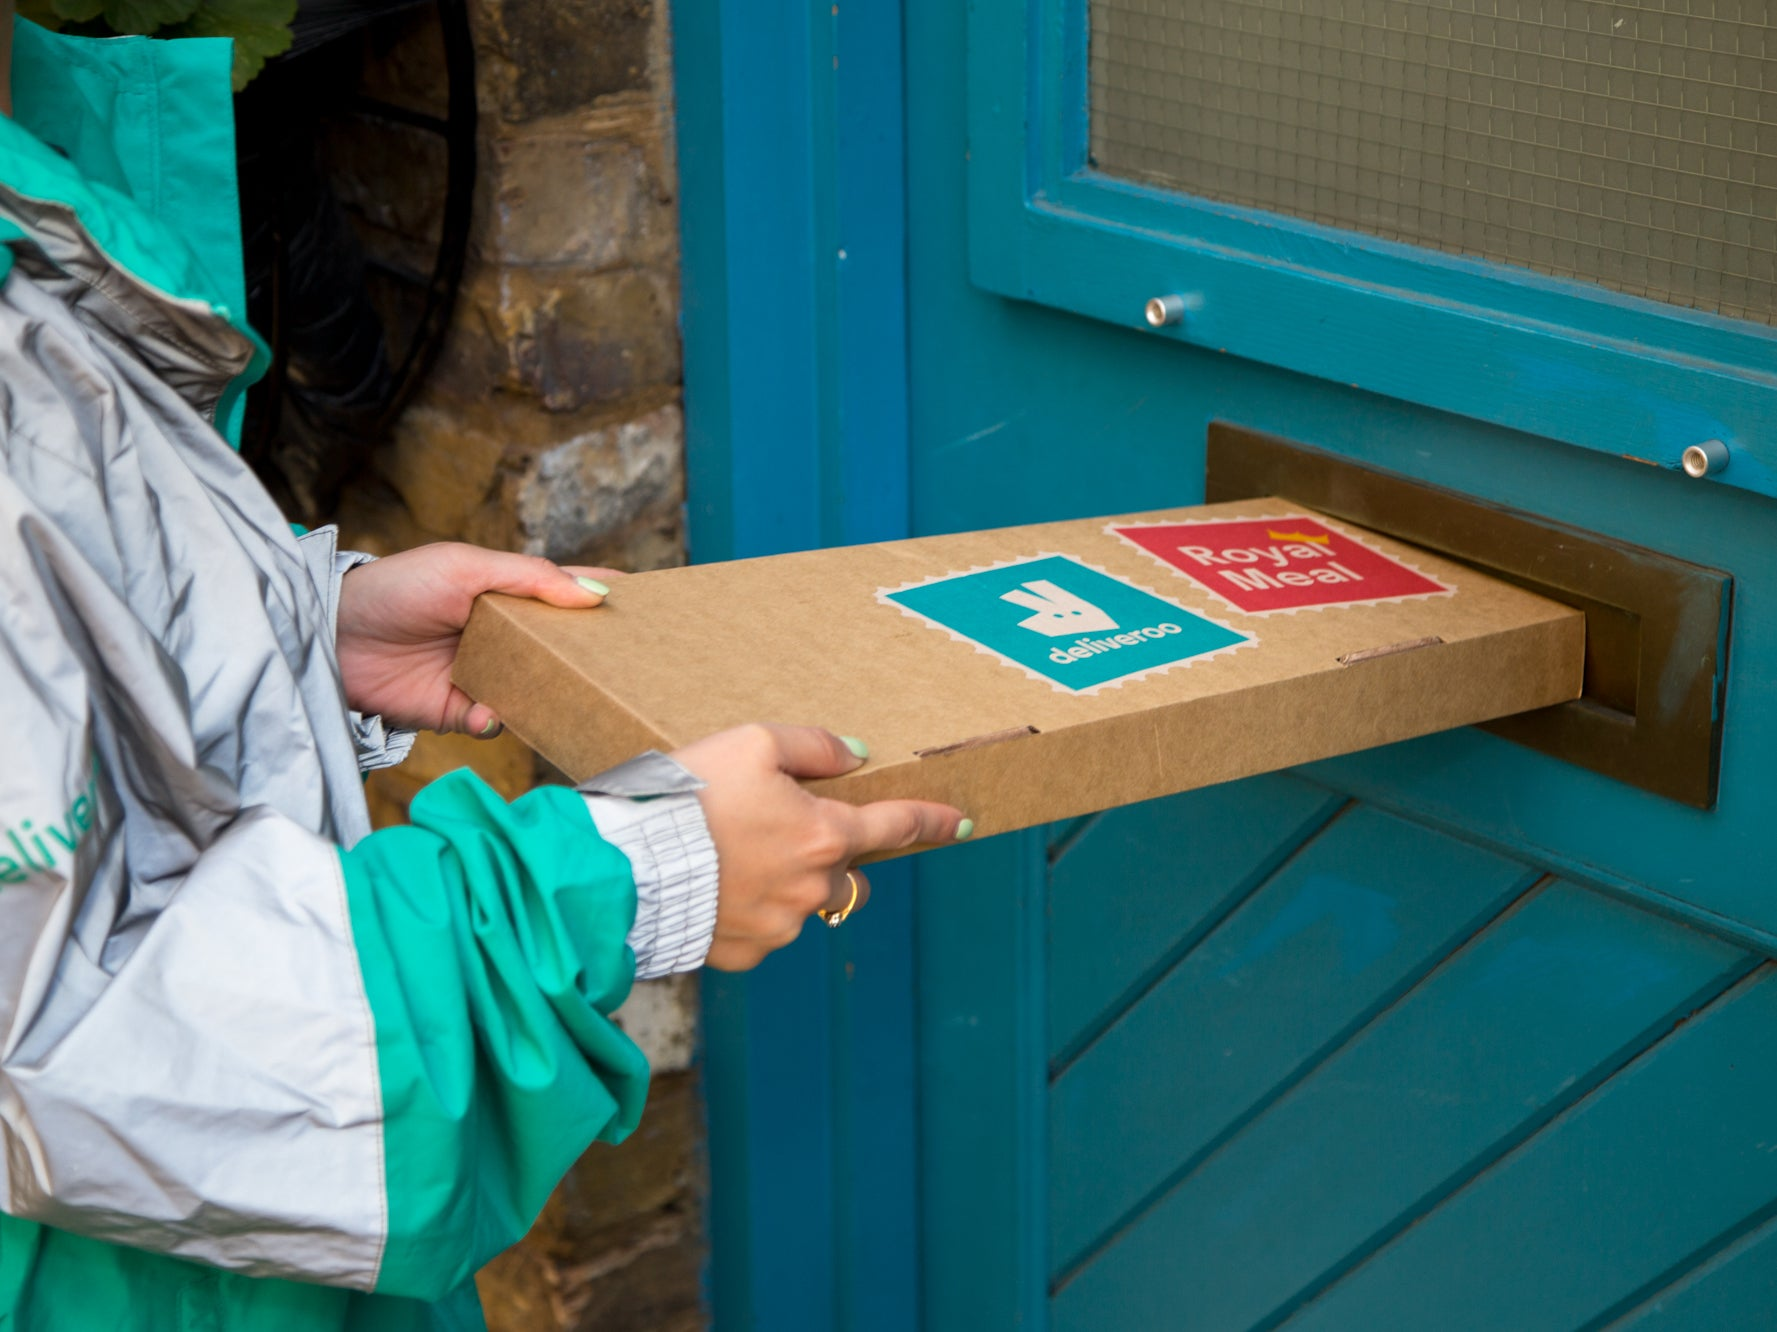 Deliveroo launches letterbox delivery service so customers don't need to answer the door 1